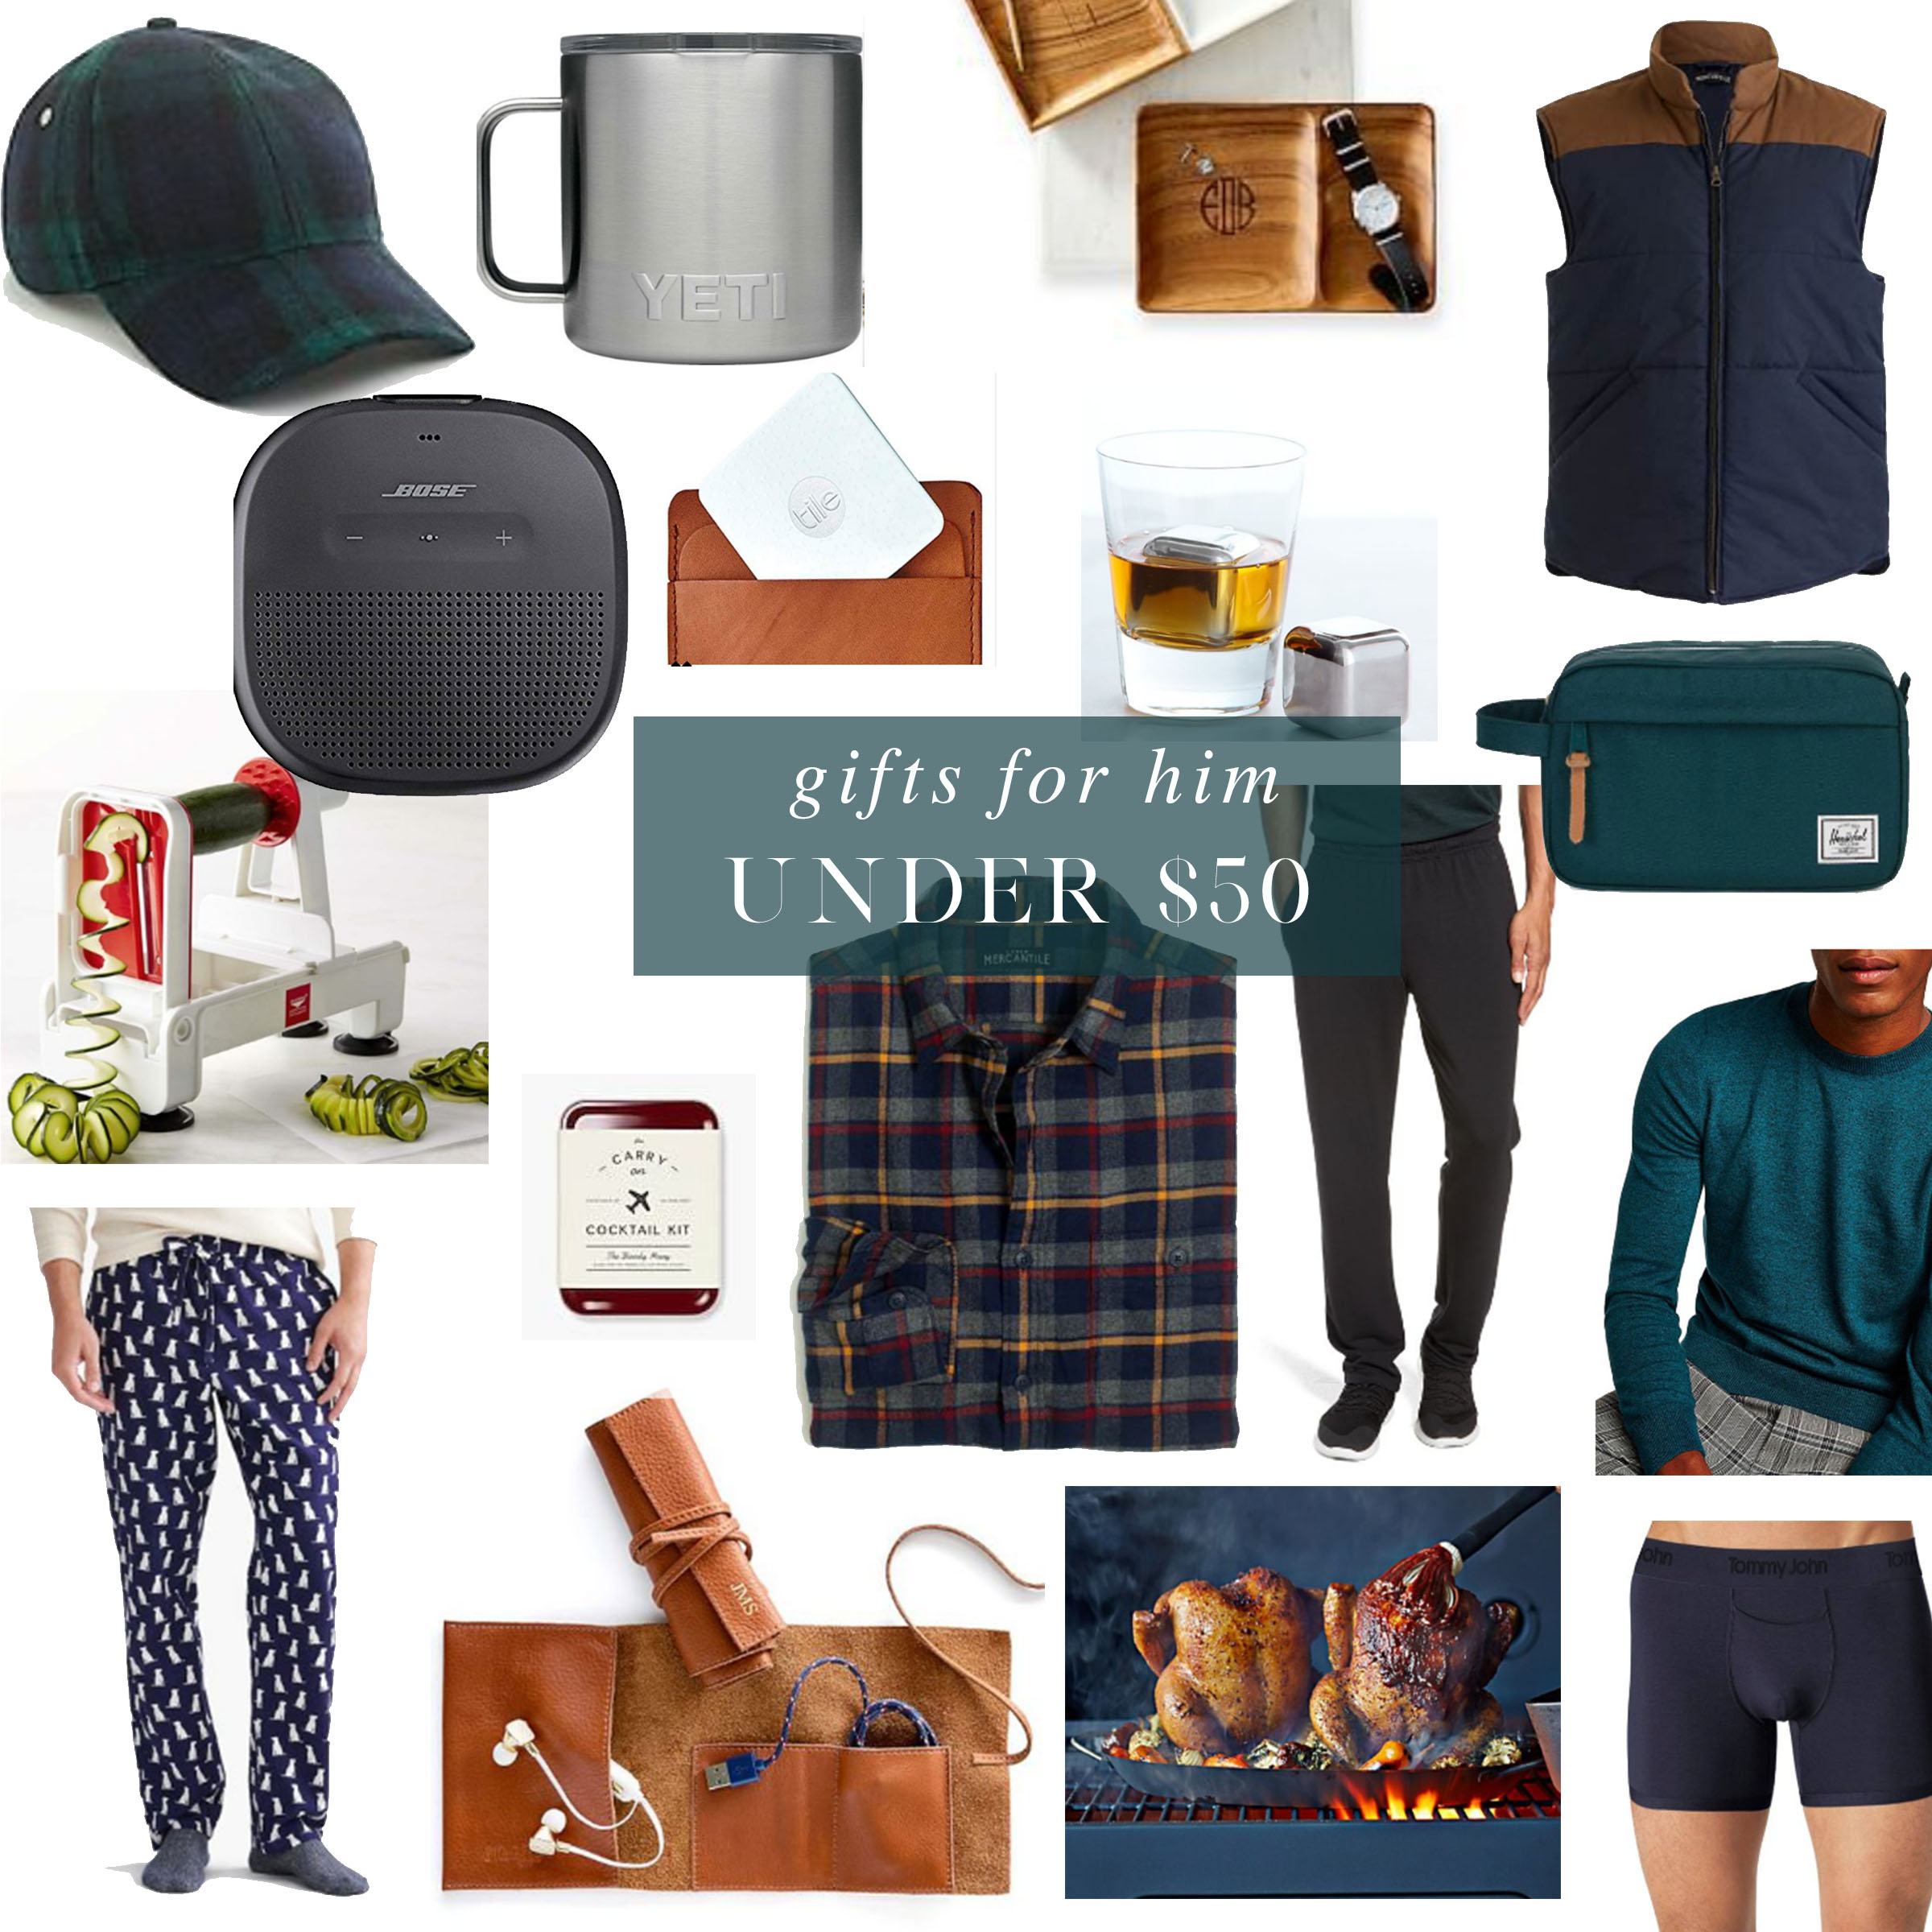 gifts for him under $50.jpg